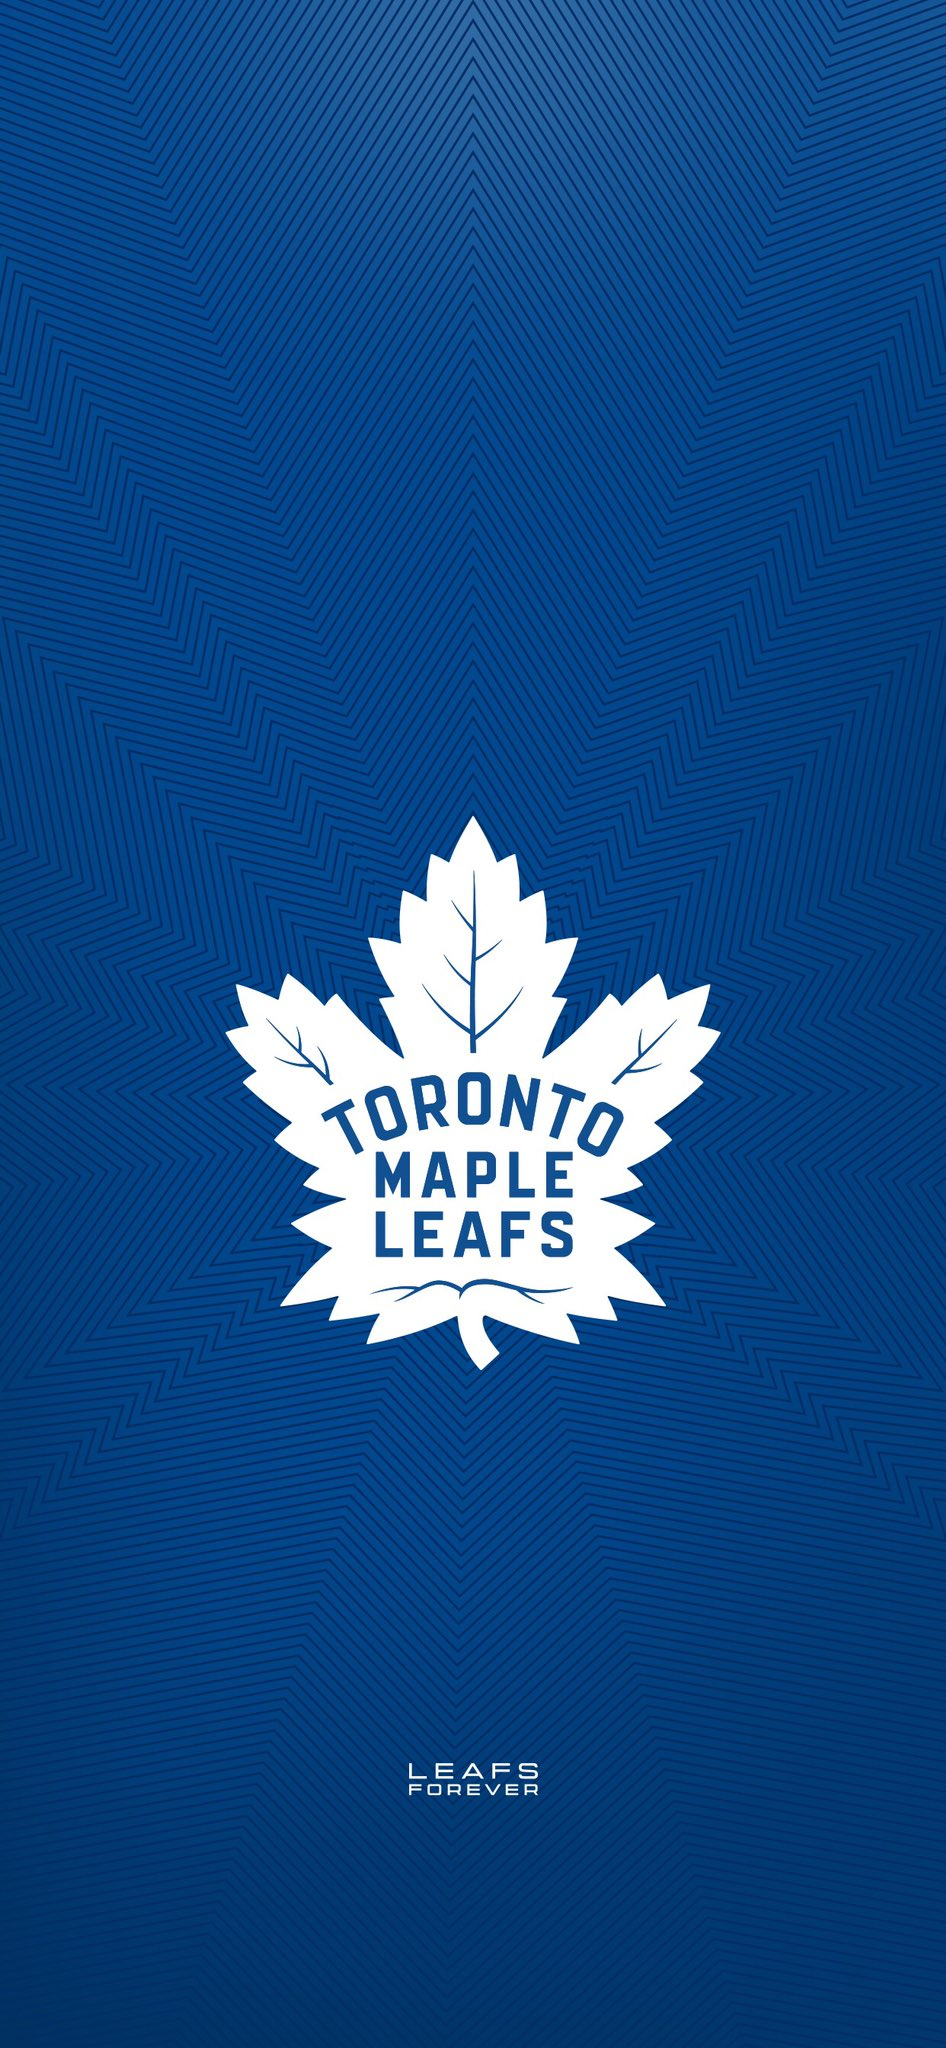 Toronto Maple Leafs On Twitter Rep The Leafs Everywhere You Go Leafsforever Wallpaperwednesday Bellletstalk